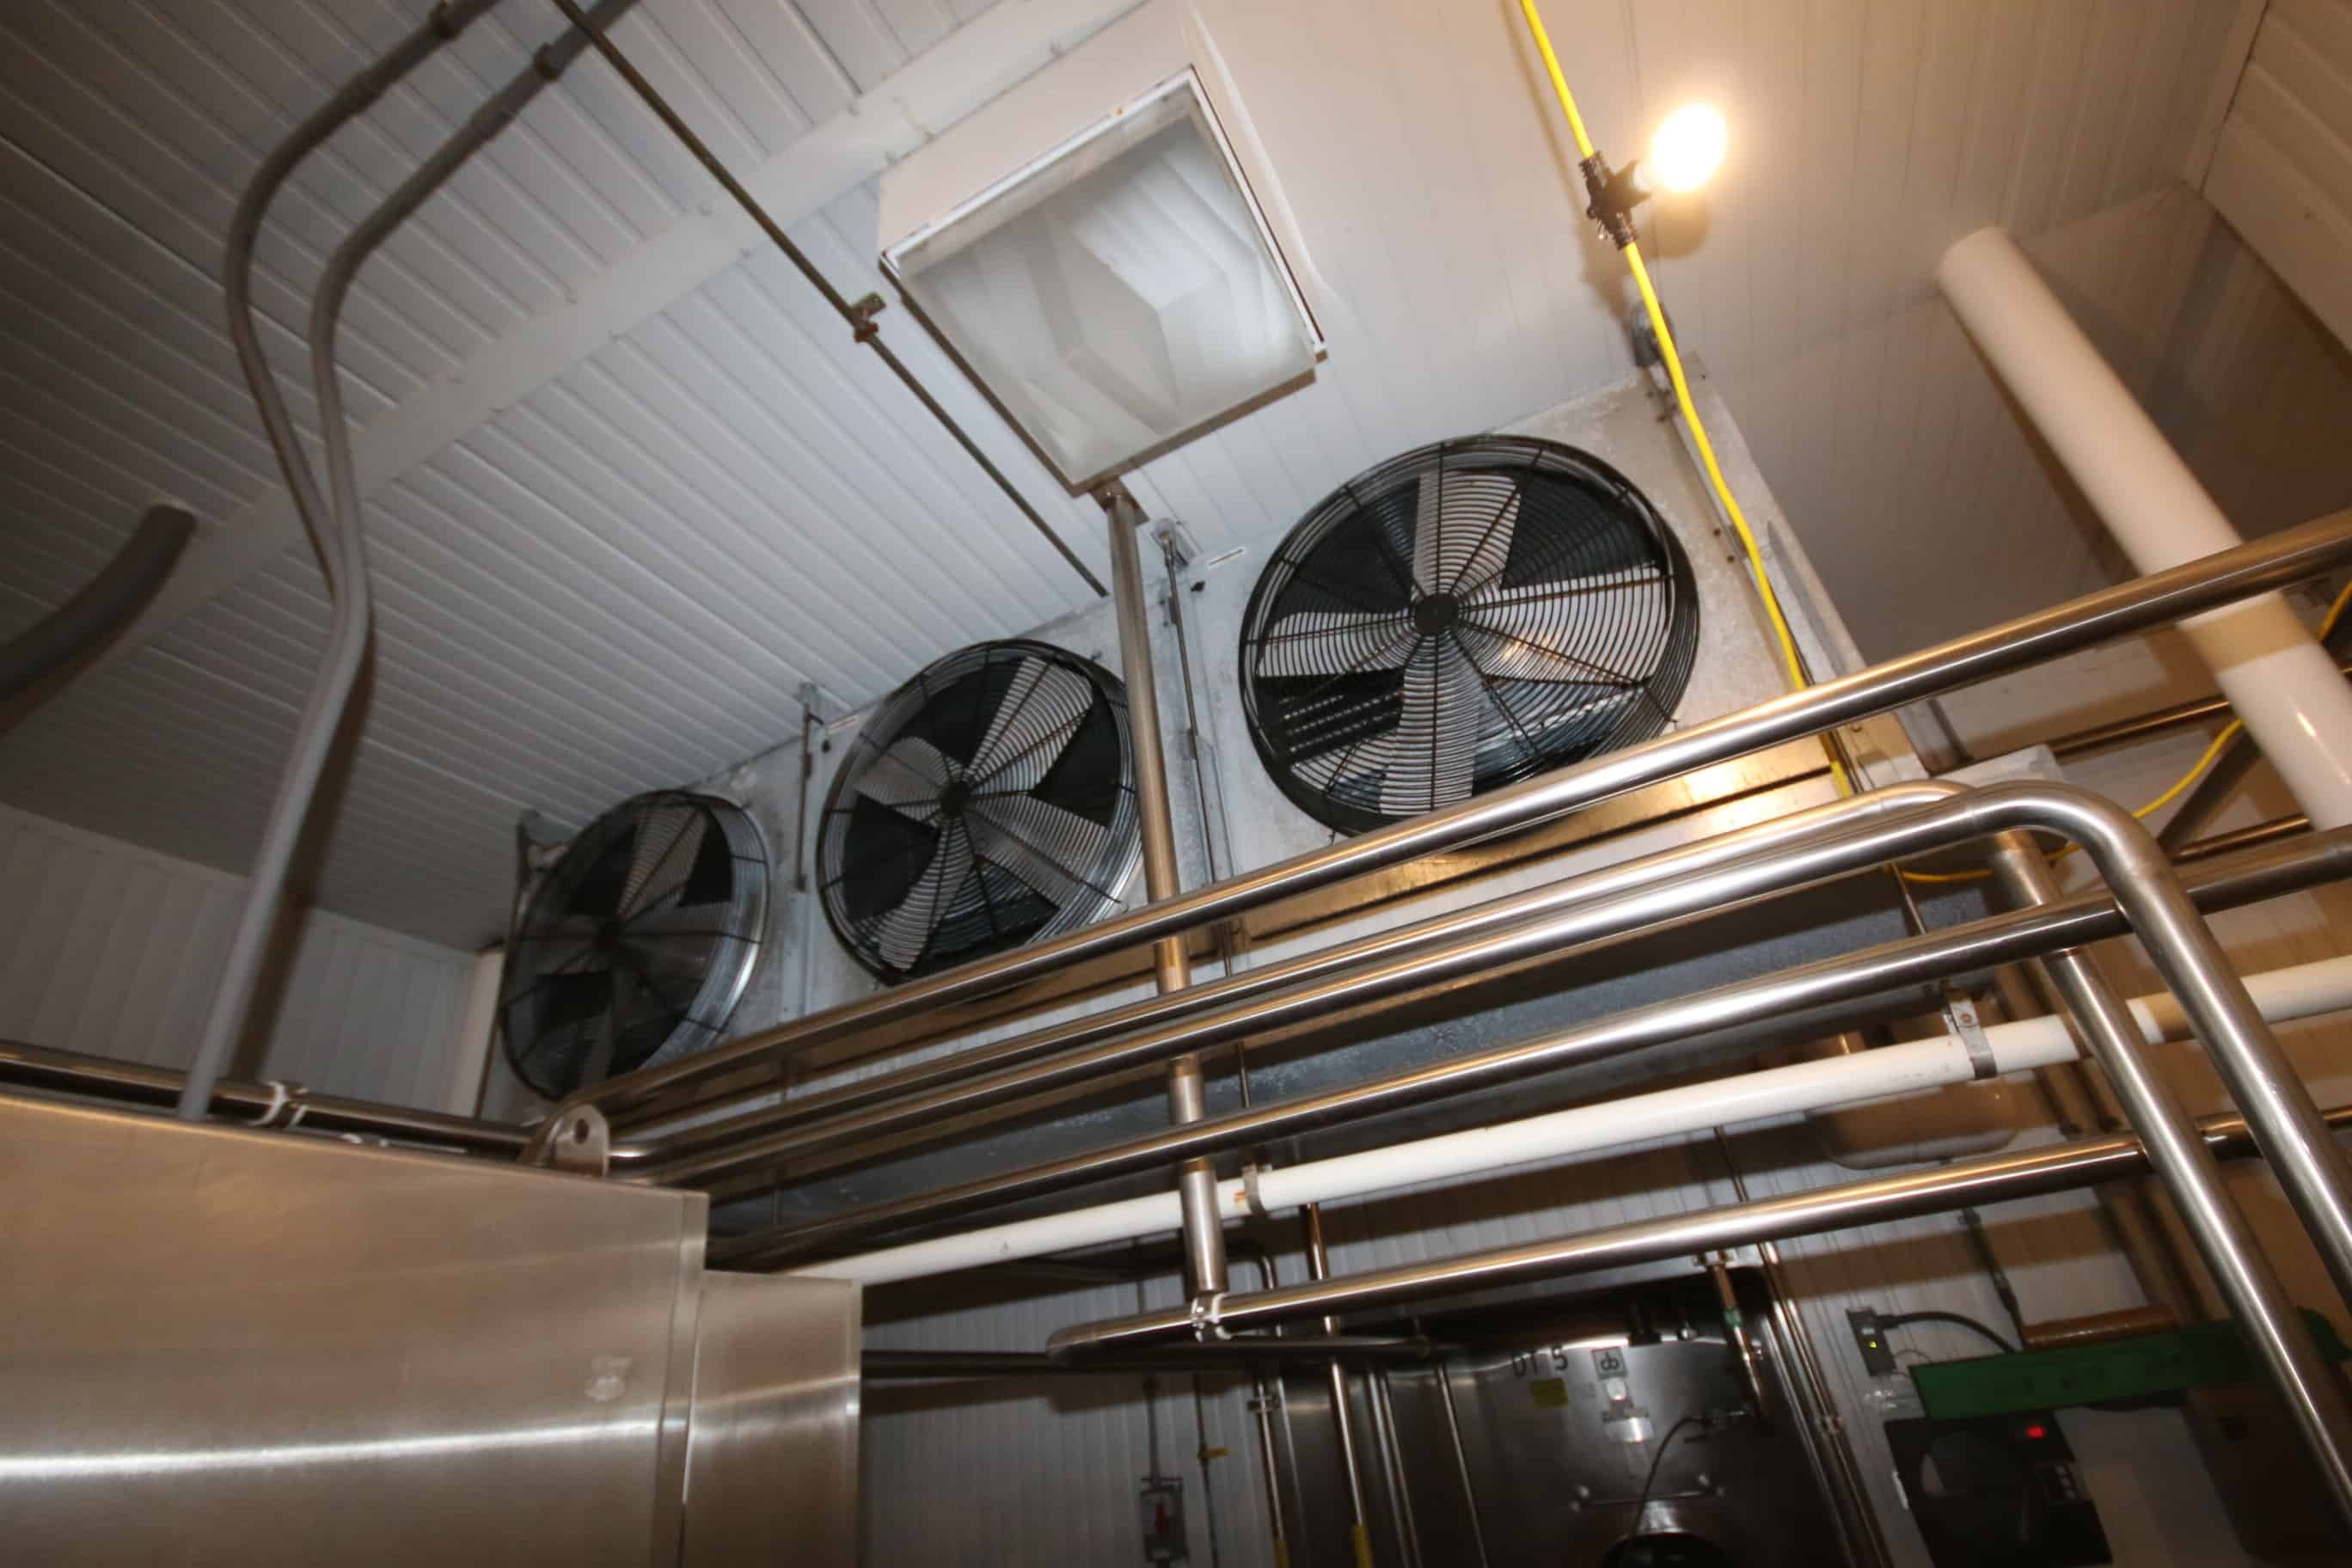 (20) Krack 6, 5 & 4 Fan Ammonia Evaporator / Blowers Installed Throughout Facility, Most New in 2010, Several S/S Clad Low Profile Type & Standard Type